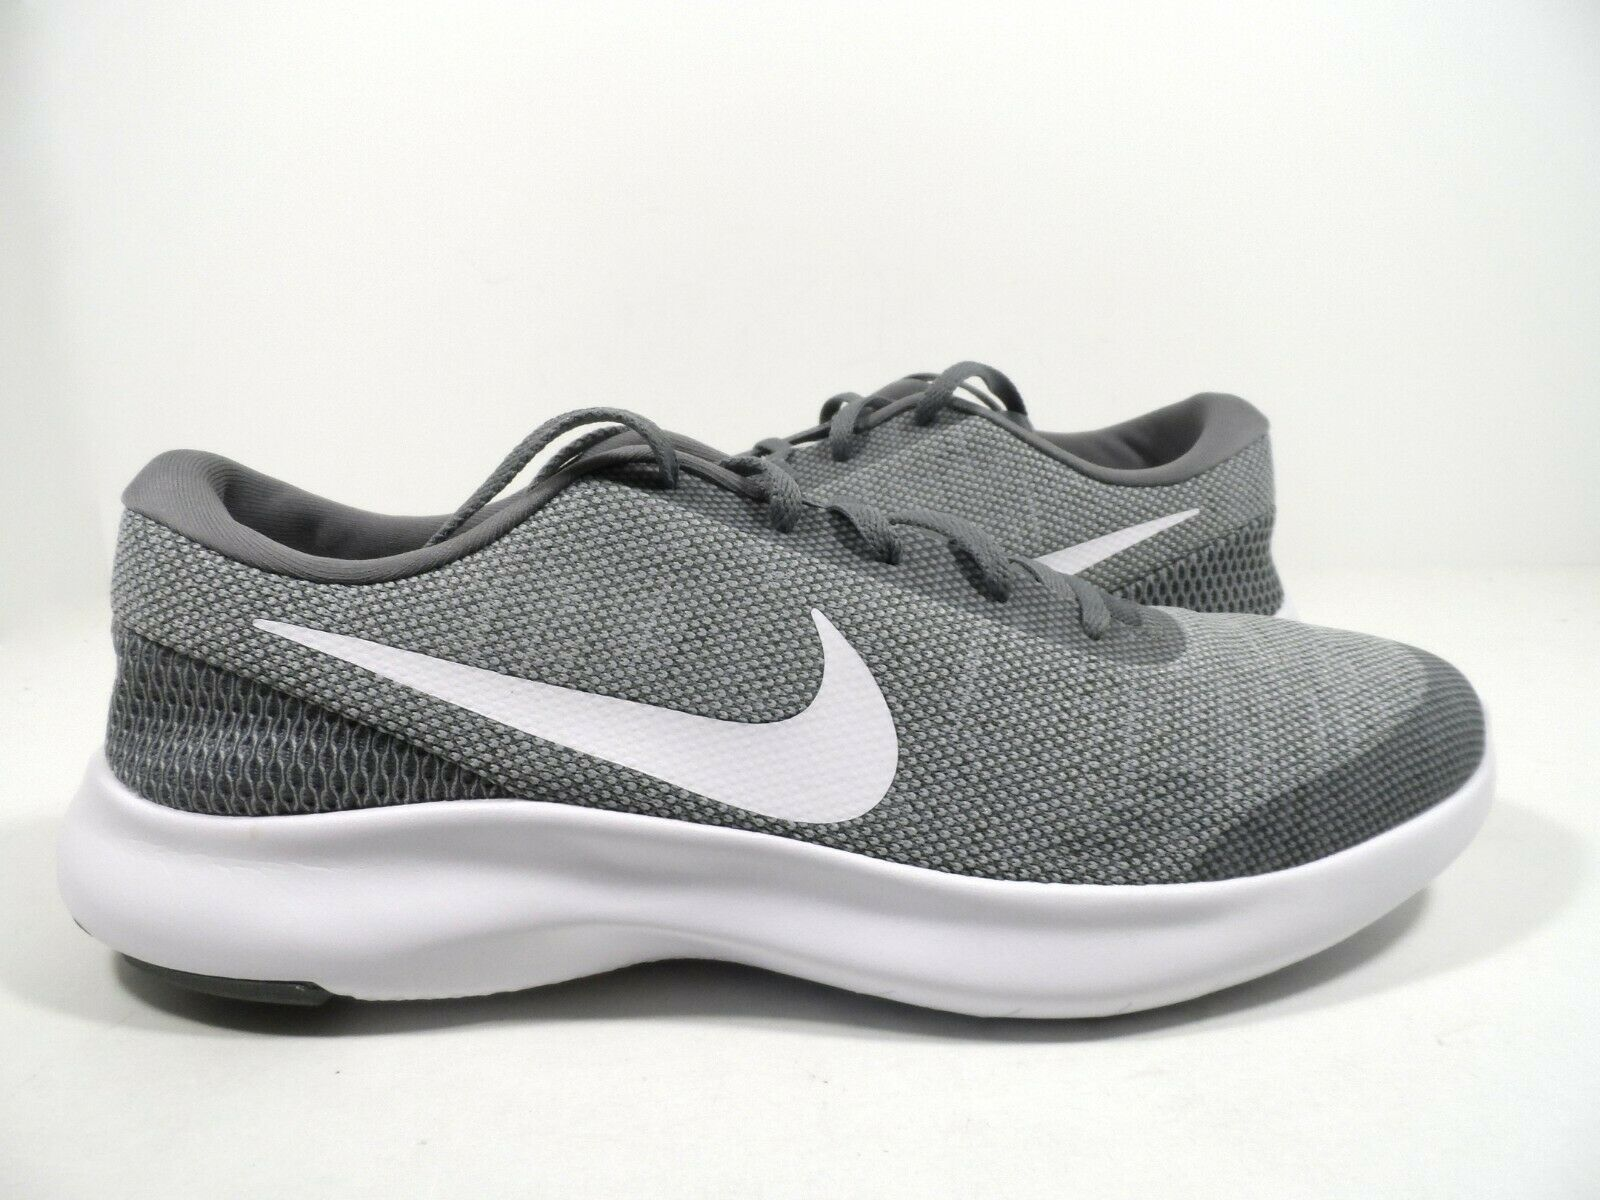 957b6383e01 NIKE Men's Flex Experience RN 7 Running shoes Wolf Grey White Cool Grey Size  13 nnqwjr7989-Athletic Shoes